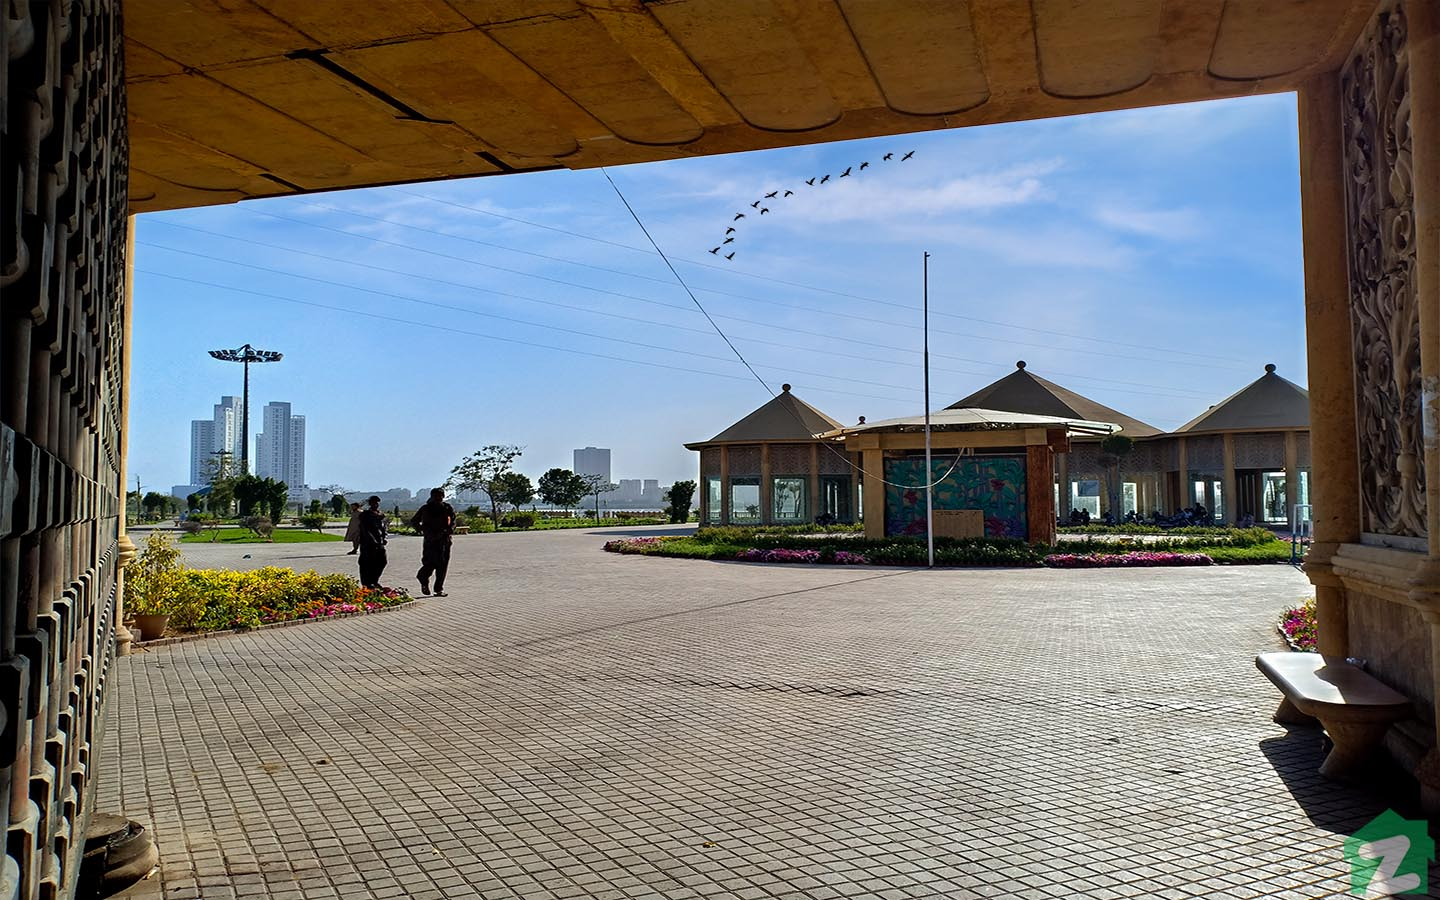 Shaheed Benazir Bhutto Park is beautiful with a large number of flowerbeds.